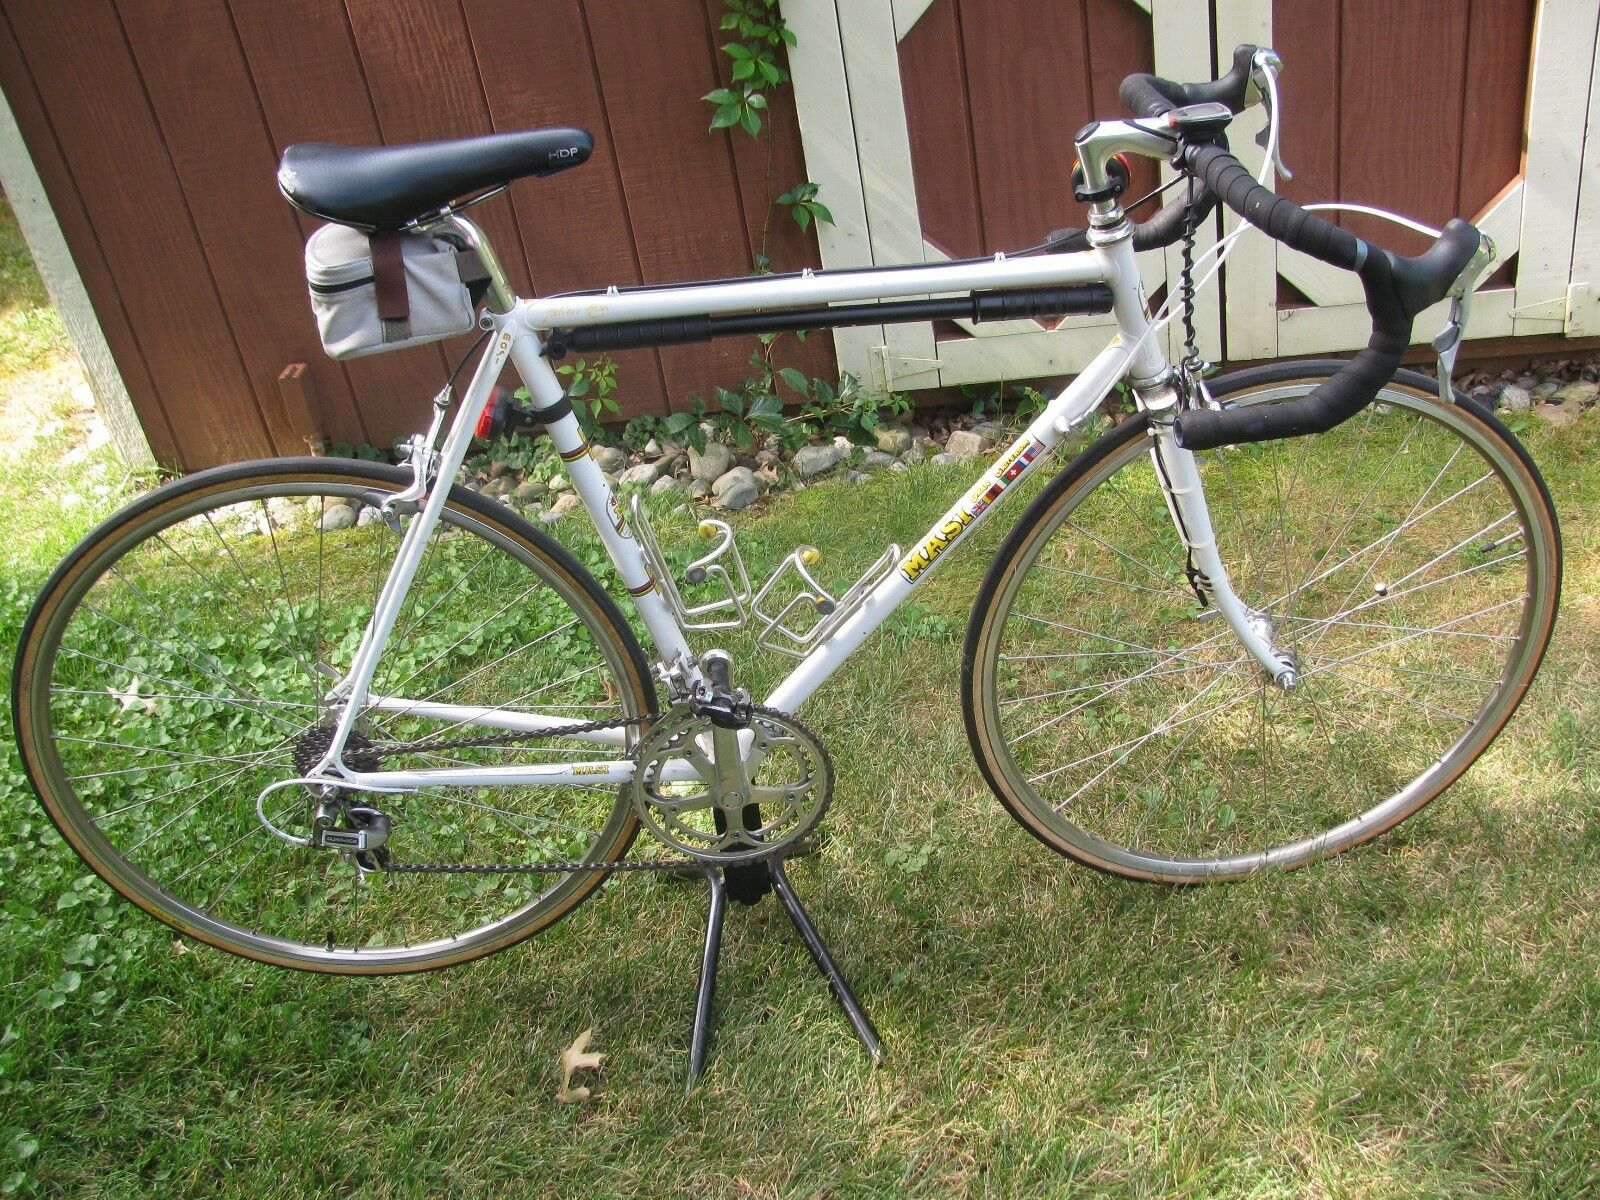 Masi Gran Criterium, 1988, 55cm Vintage Bicycle Bike  Dura-Ace  authentic online